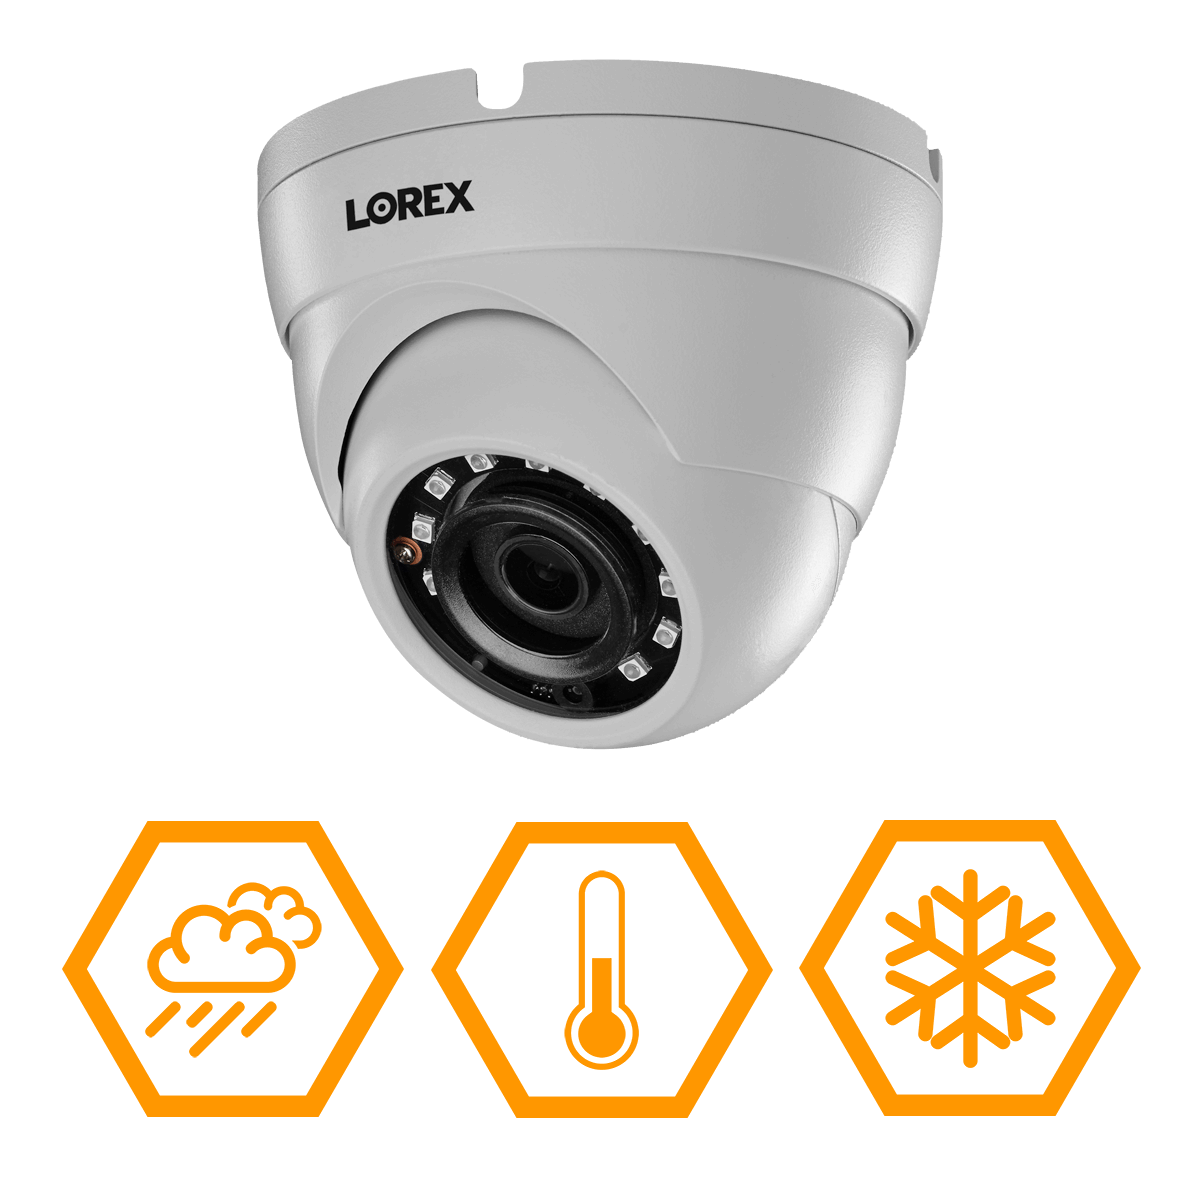 IP66 weatherproof HD analog security camera that can stand up to extreme temperatures